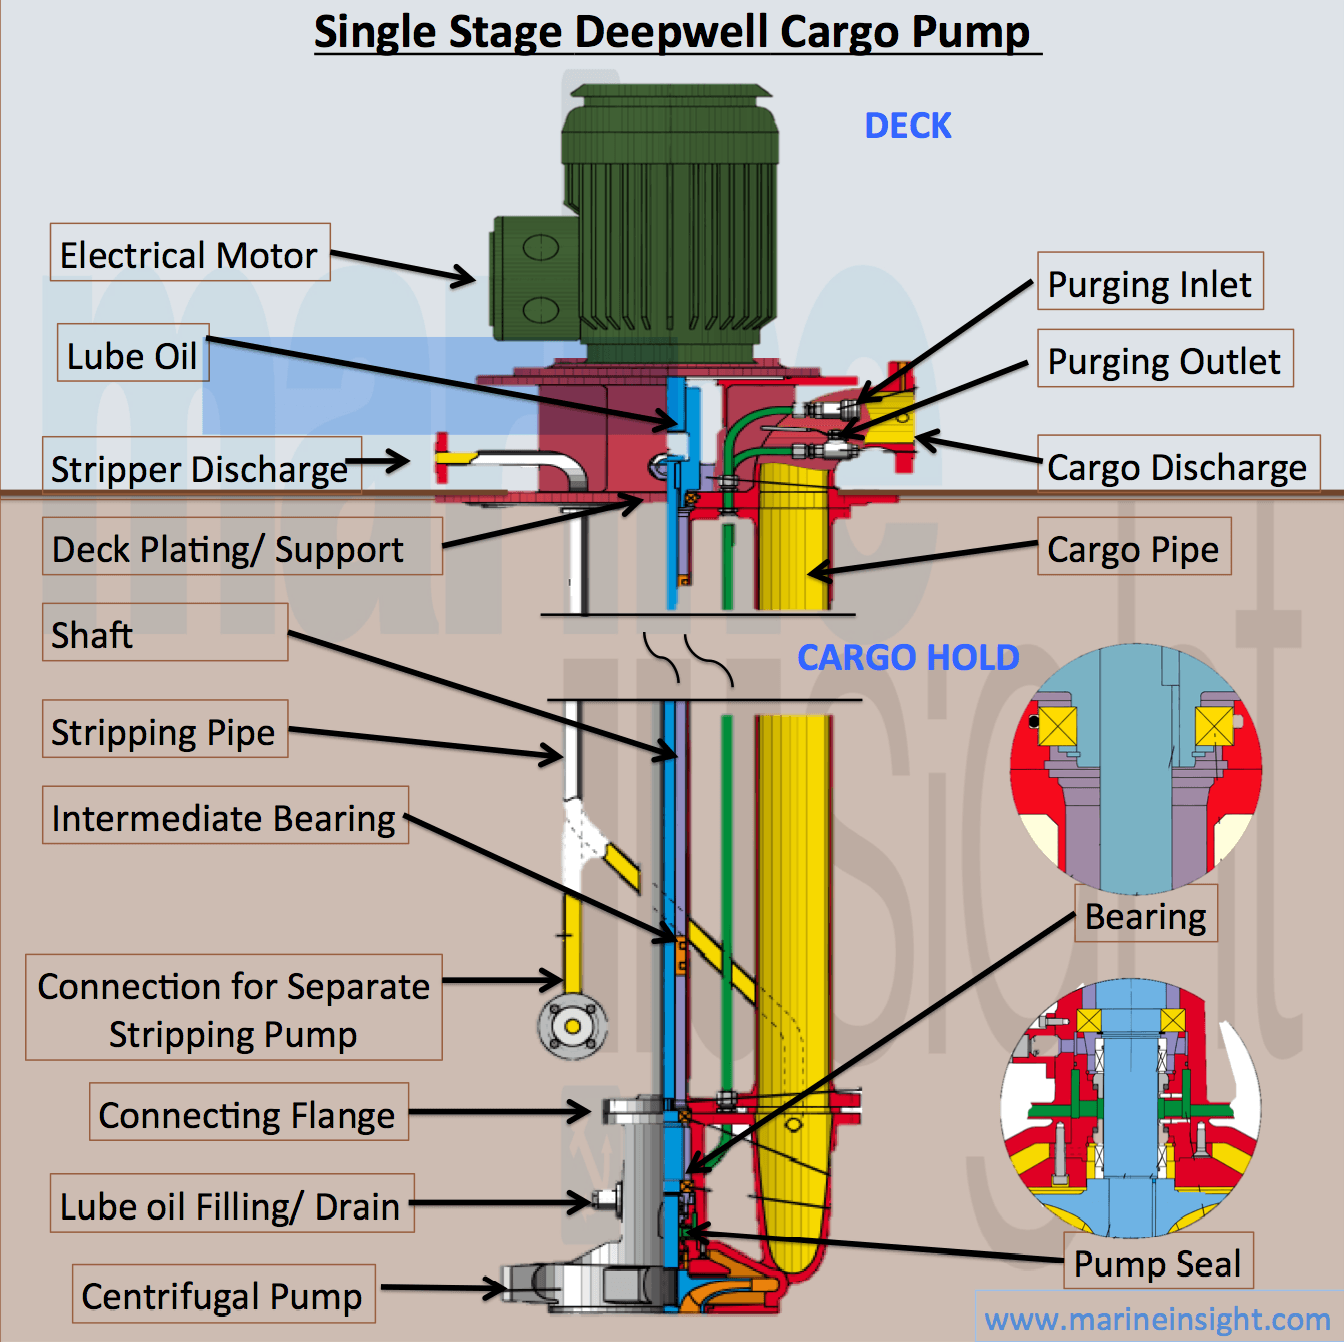 hight resolution of deepwater deepwell pump assembly is installed in two parts the motor is on deck and the pump is inside the cargo hold different parts of this pump are